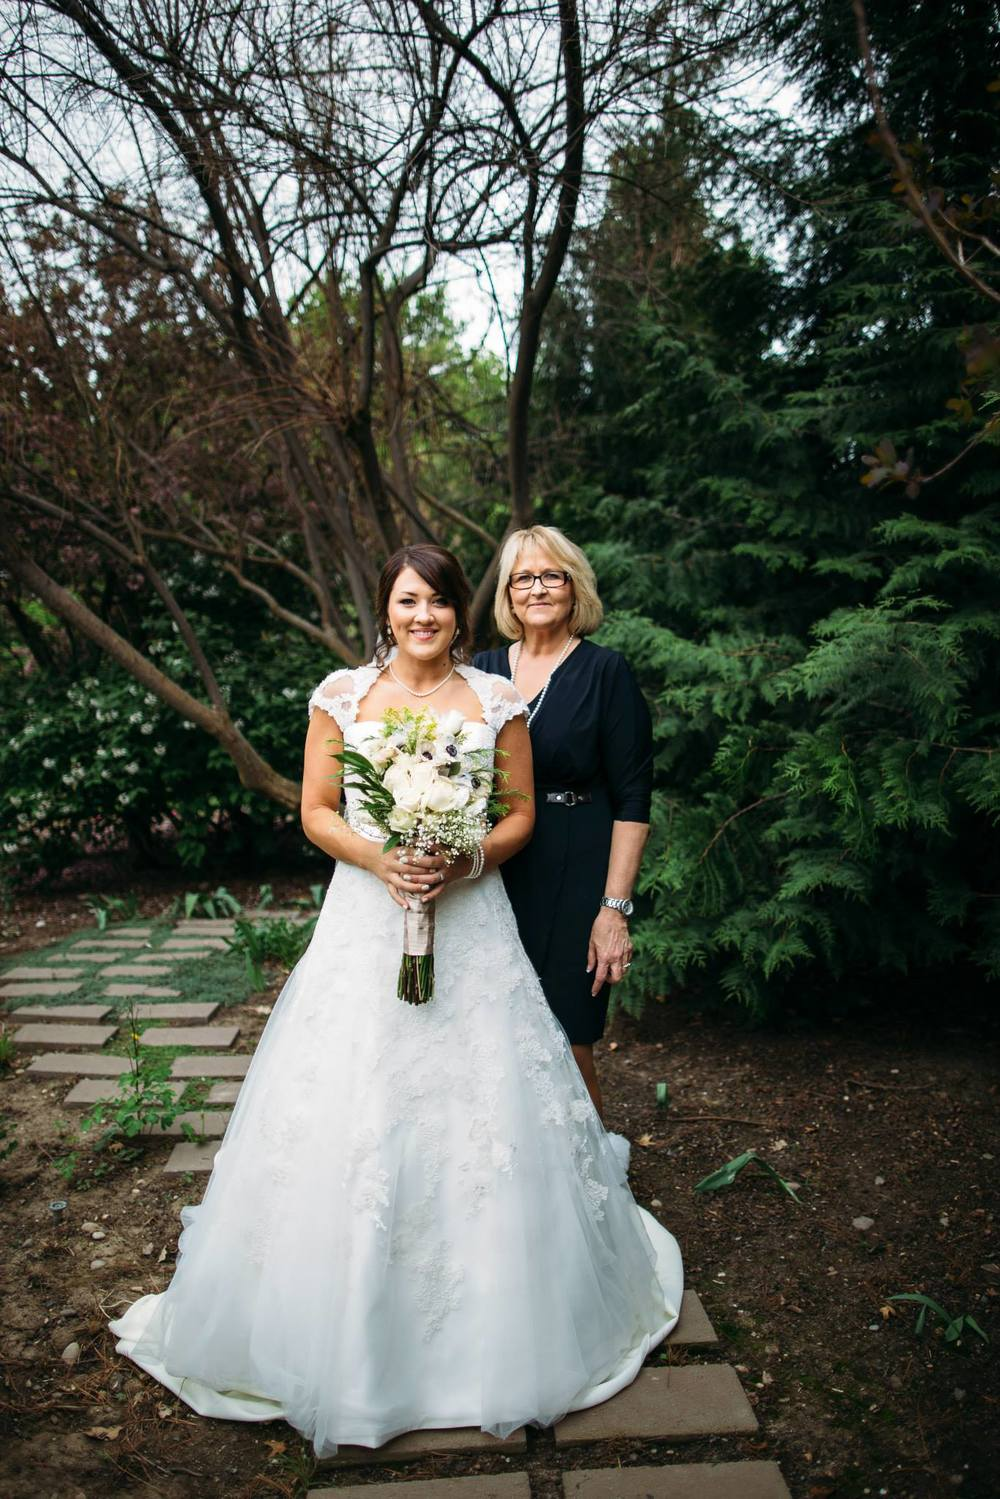 Jaimi with her mom at their wedding in Emmet, Idaho.